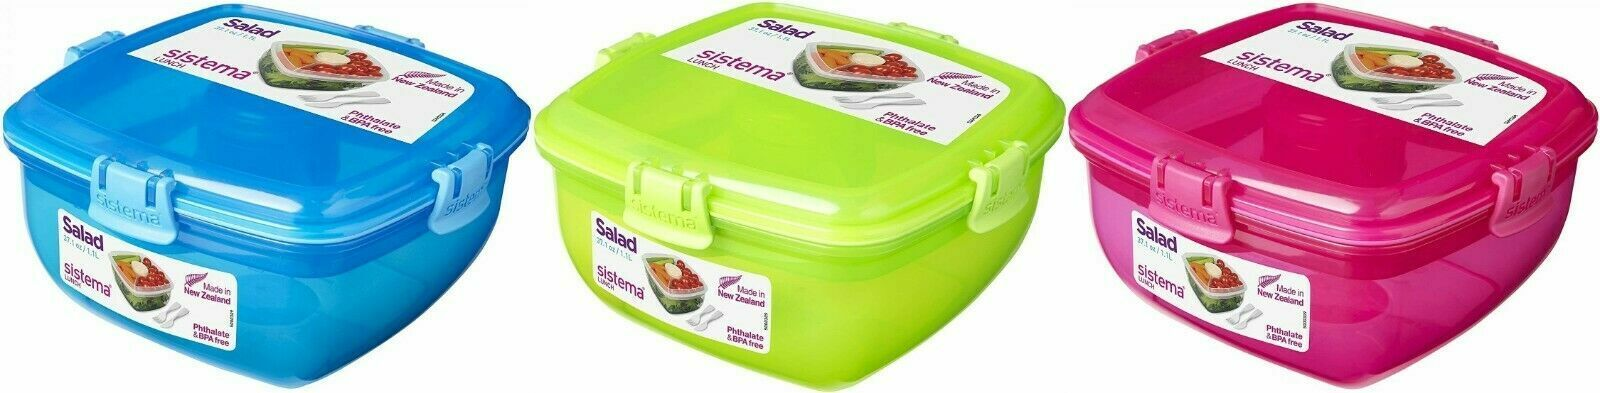 Sistema Salad to Go Container Klip It Food Lunch Box 37.1 oz – Select a Color Home & Garden